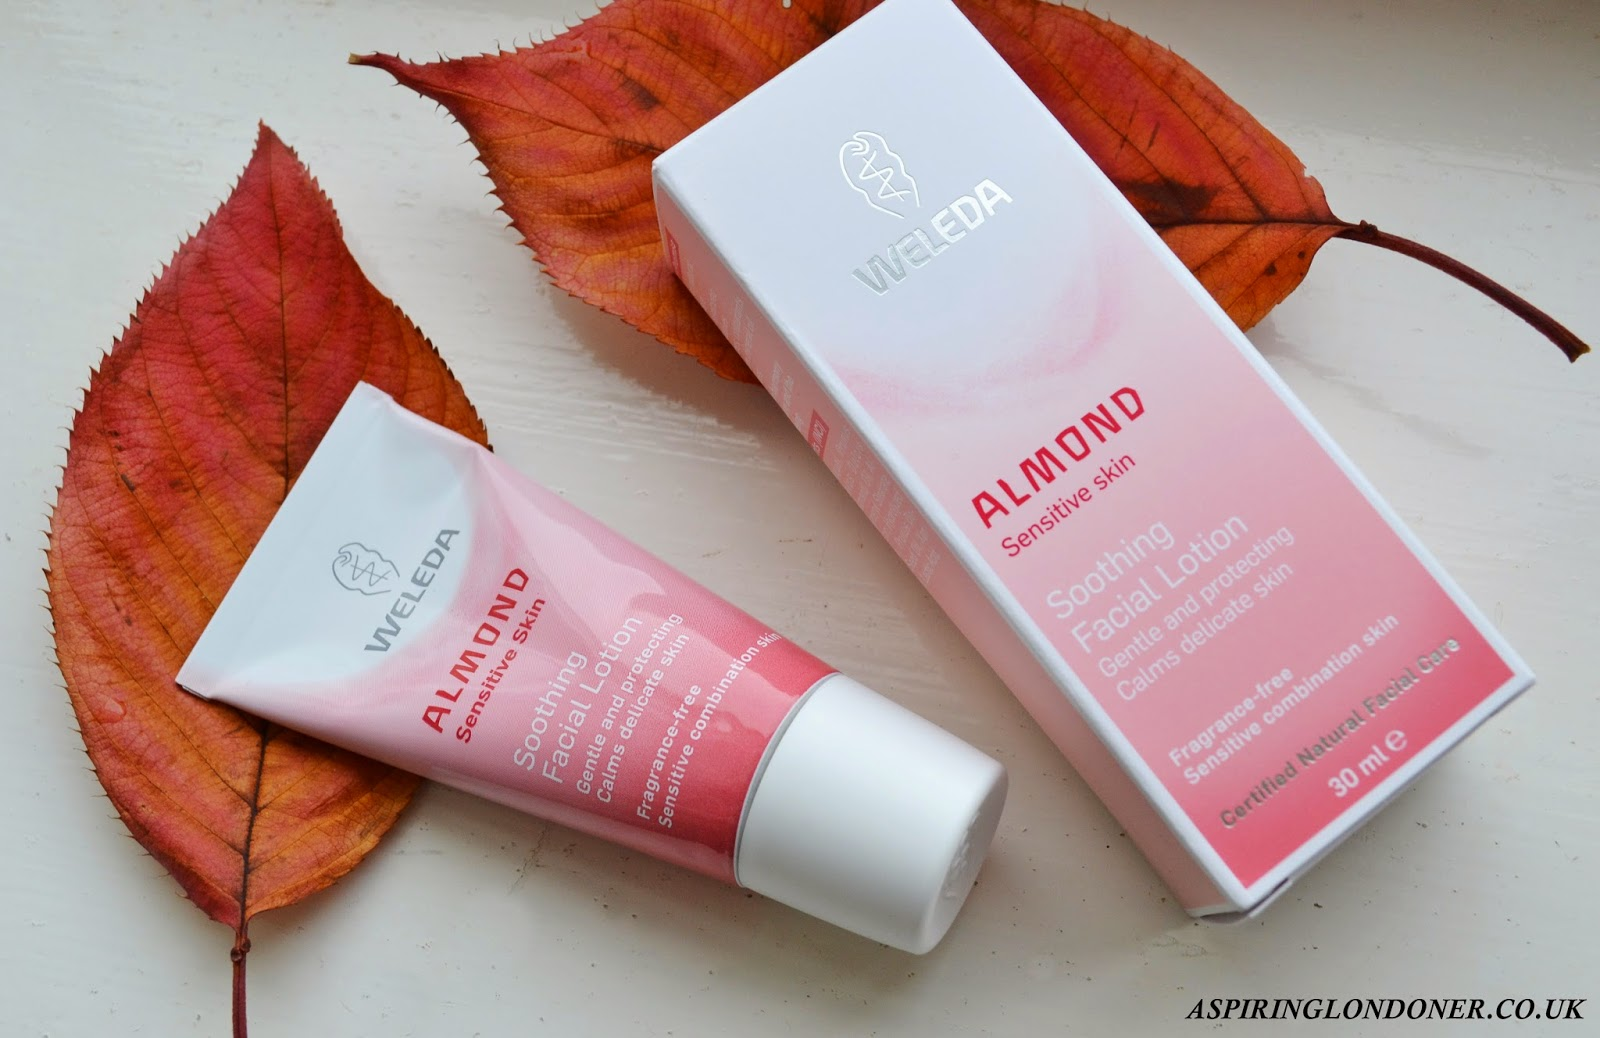 Weleda Almond Soothing Facial Lotion Review - Aspiring Londoner